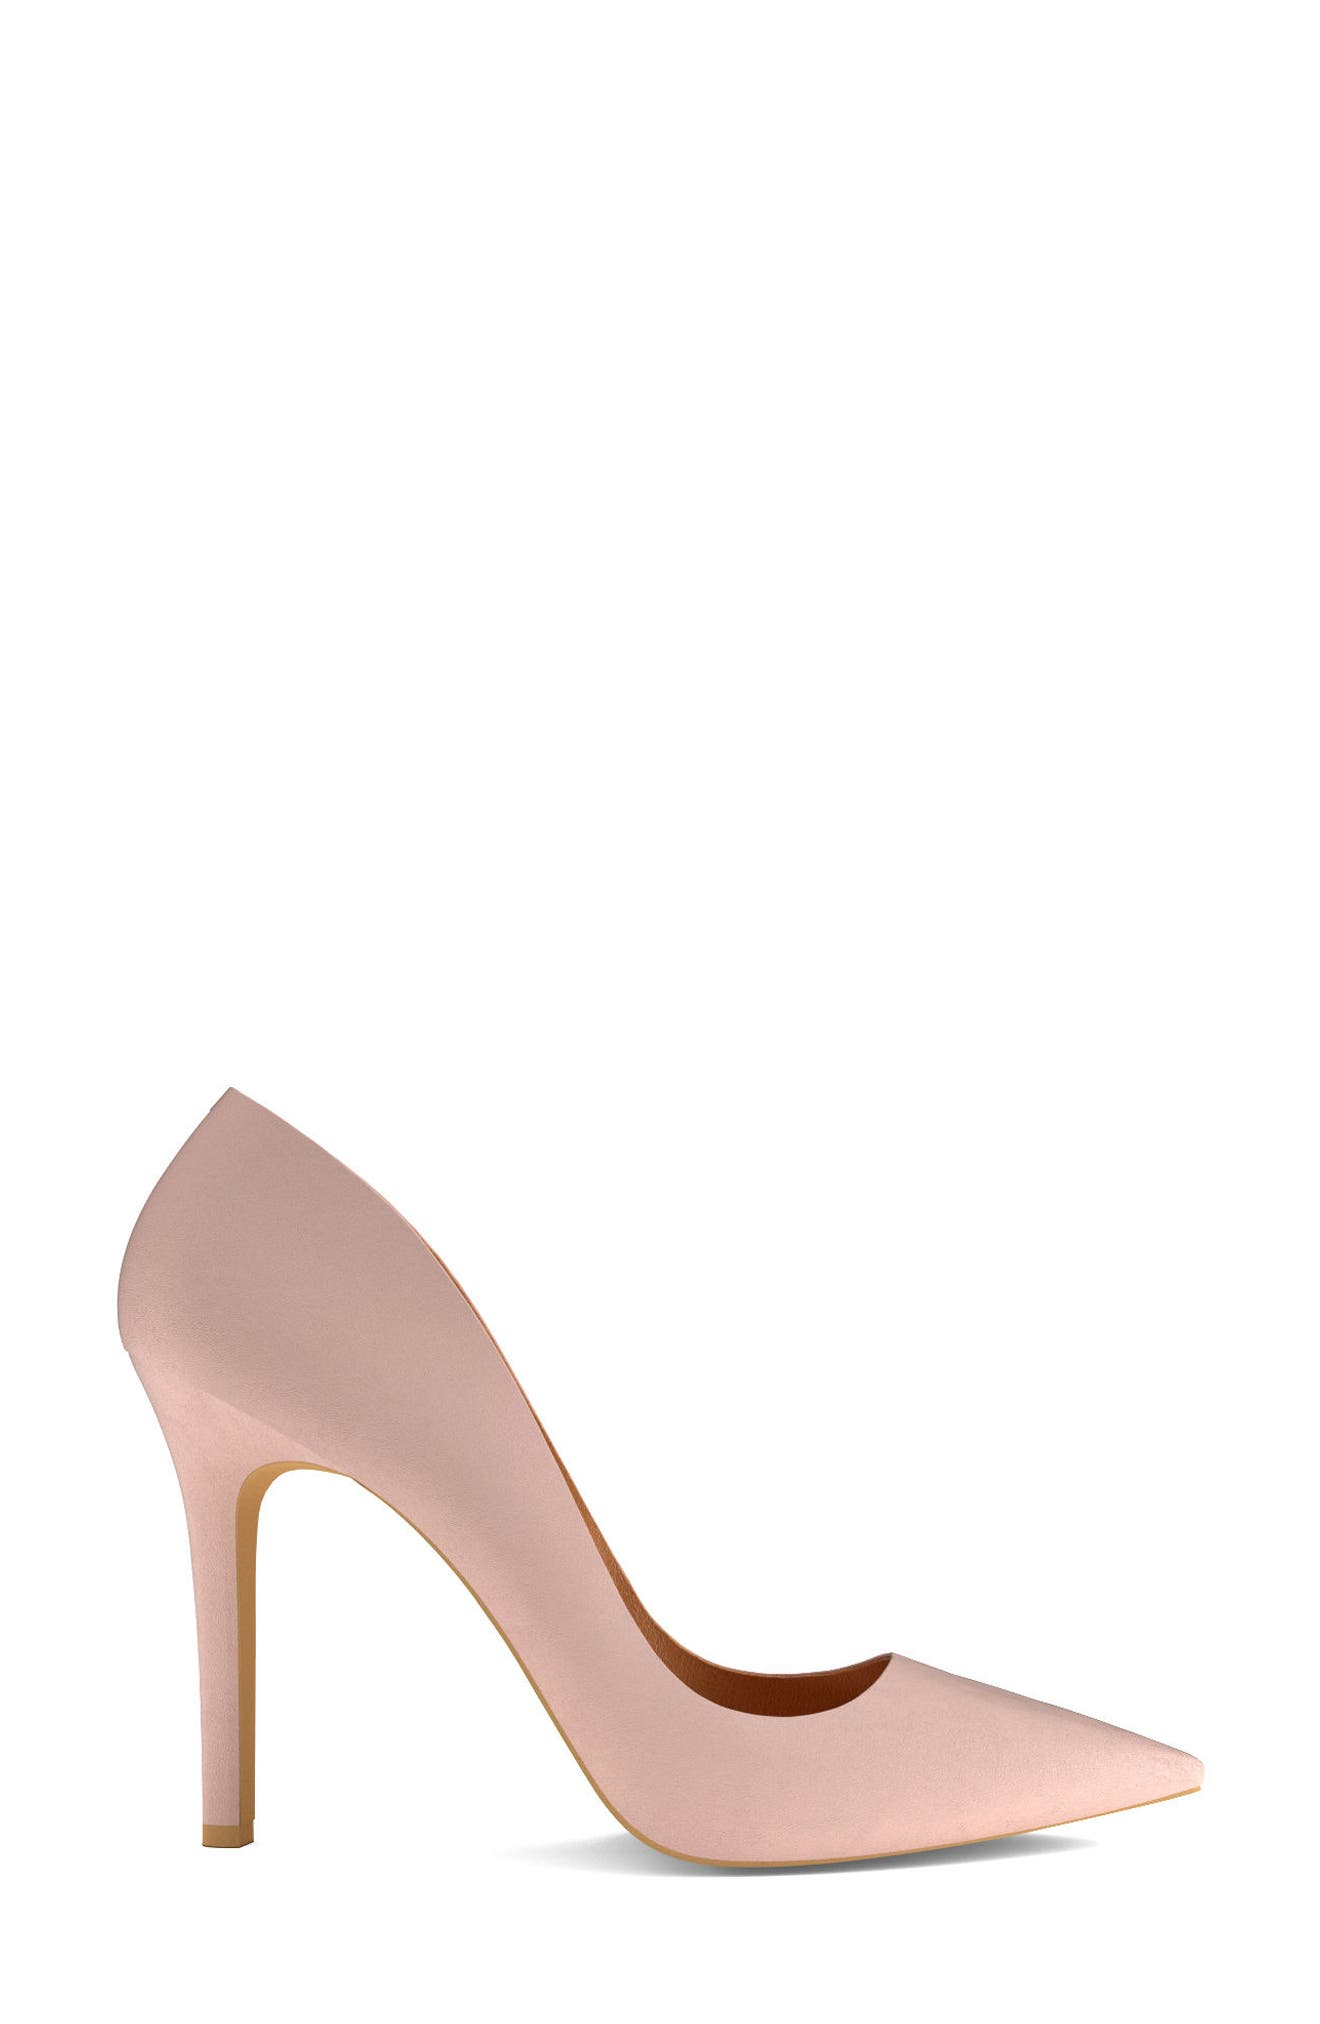 Pointy Toe Pump,                             Alternate thumbnail 3, color,                             651